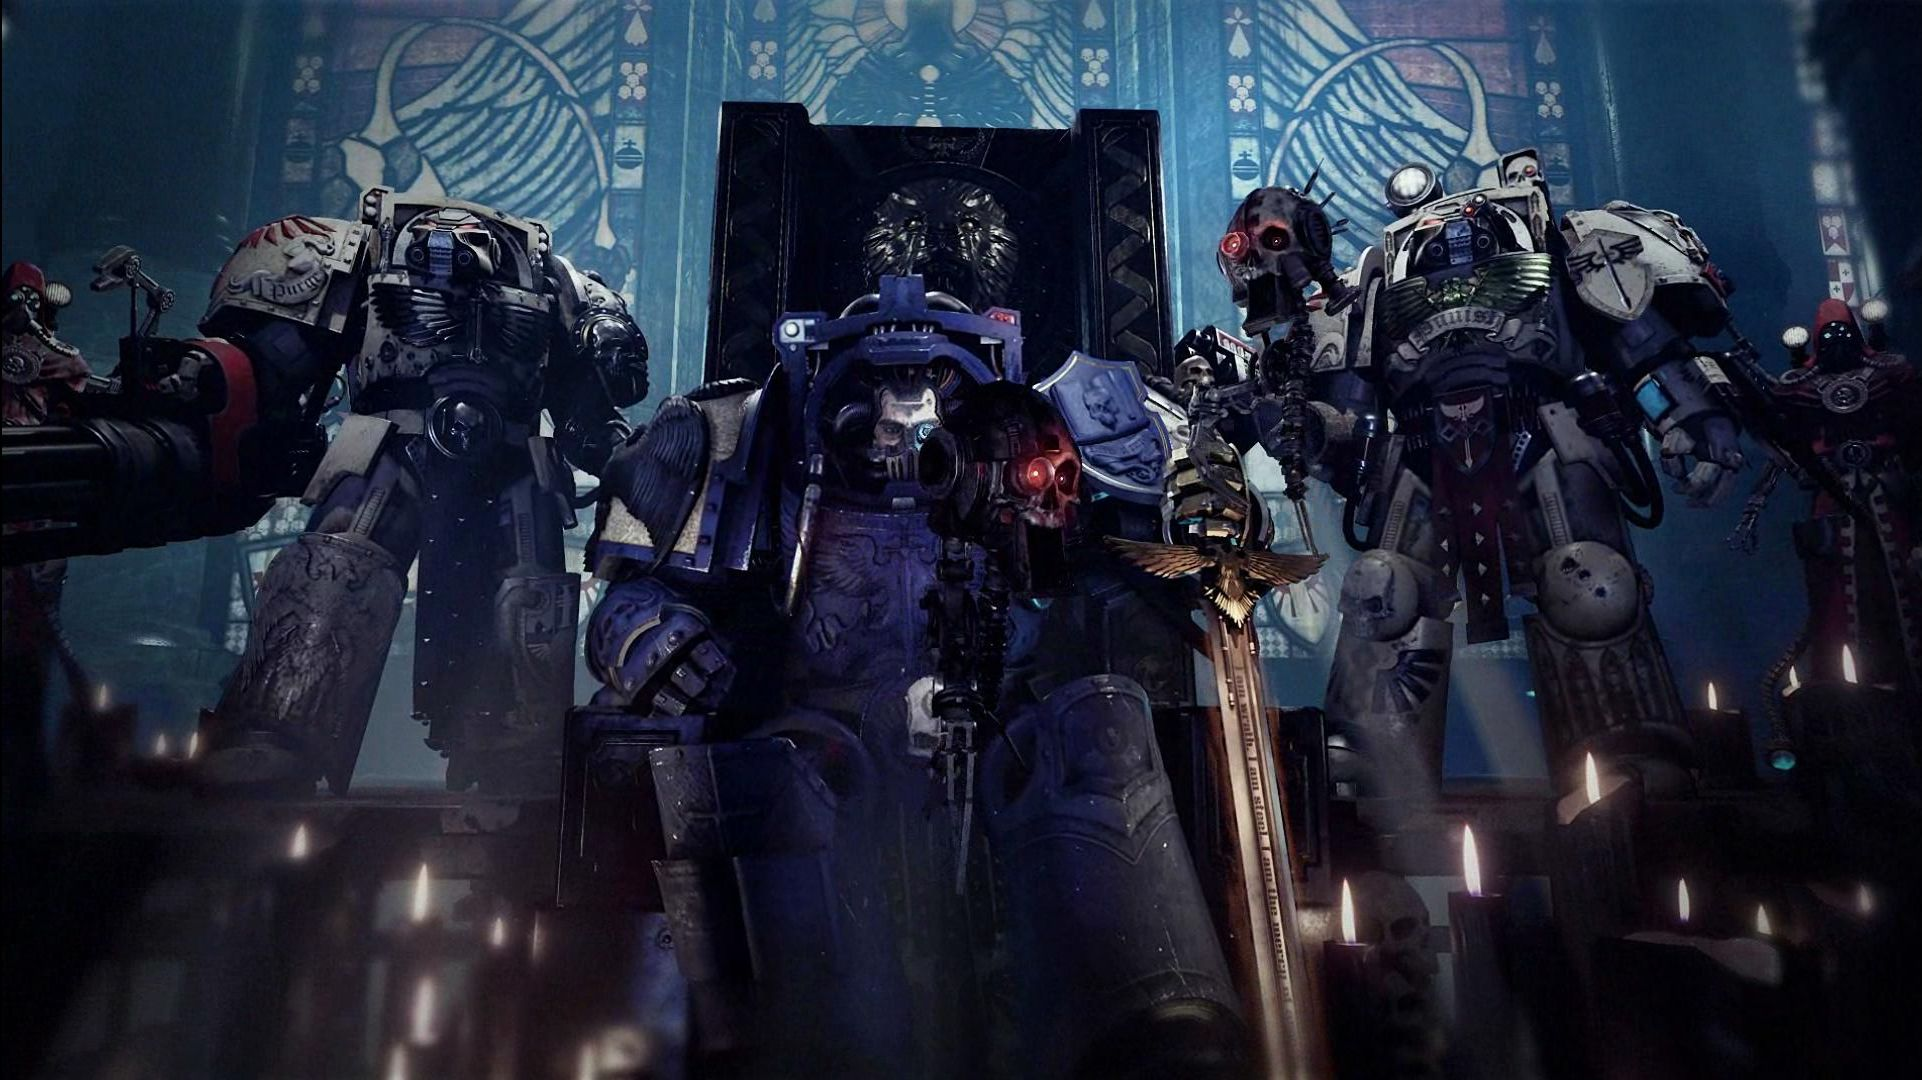 Space Hulk: Deathwing Giant Content Update Goes Live Today